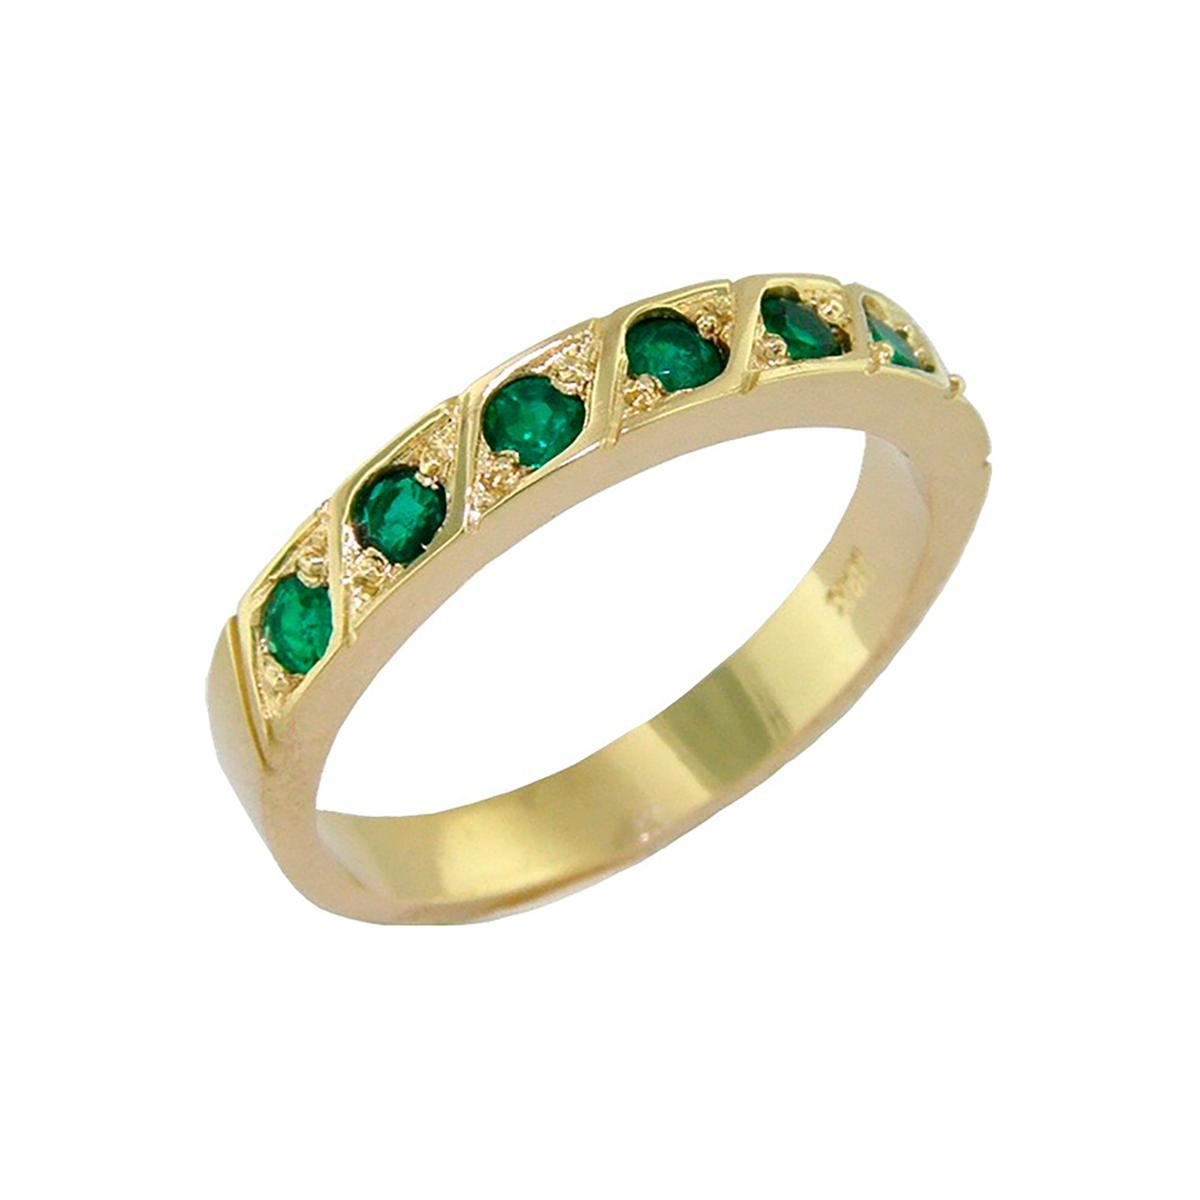 antique-style-round-emerald-wedding-band-in-18k-yellow-gold